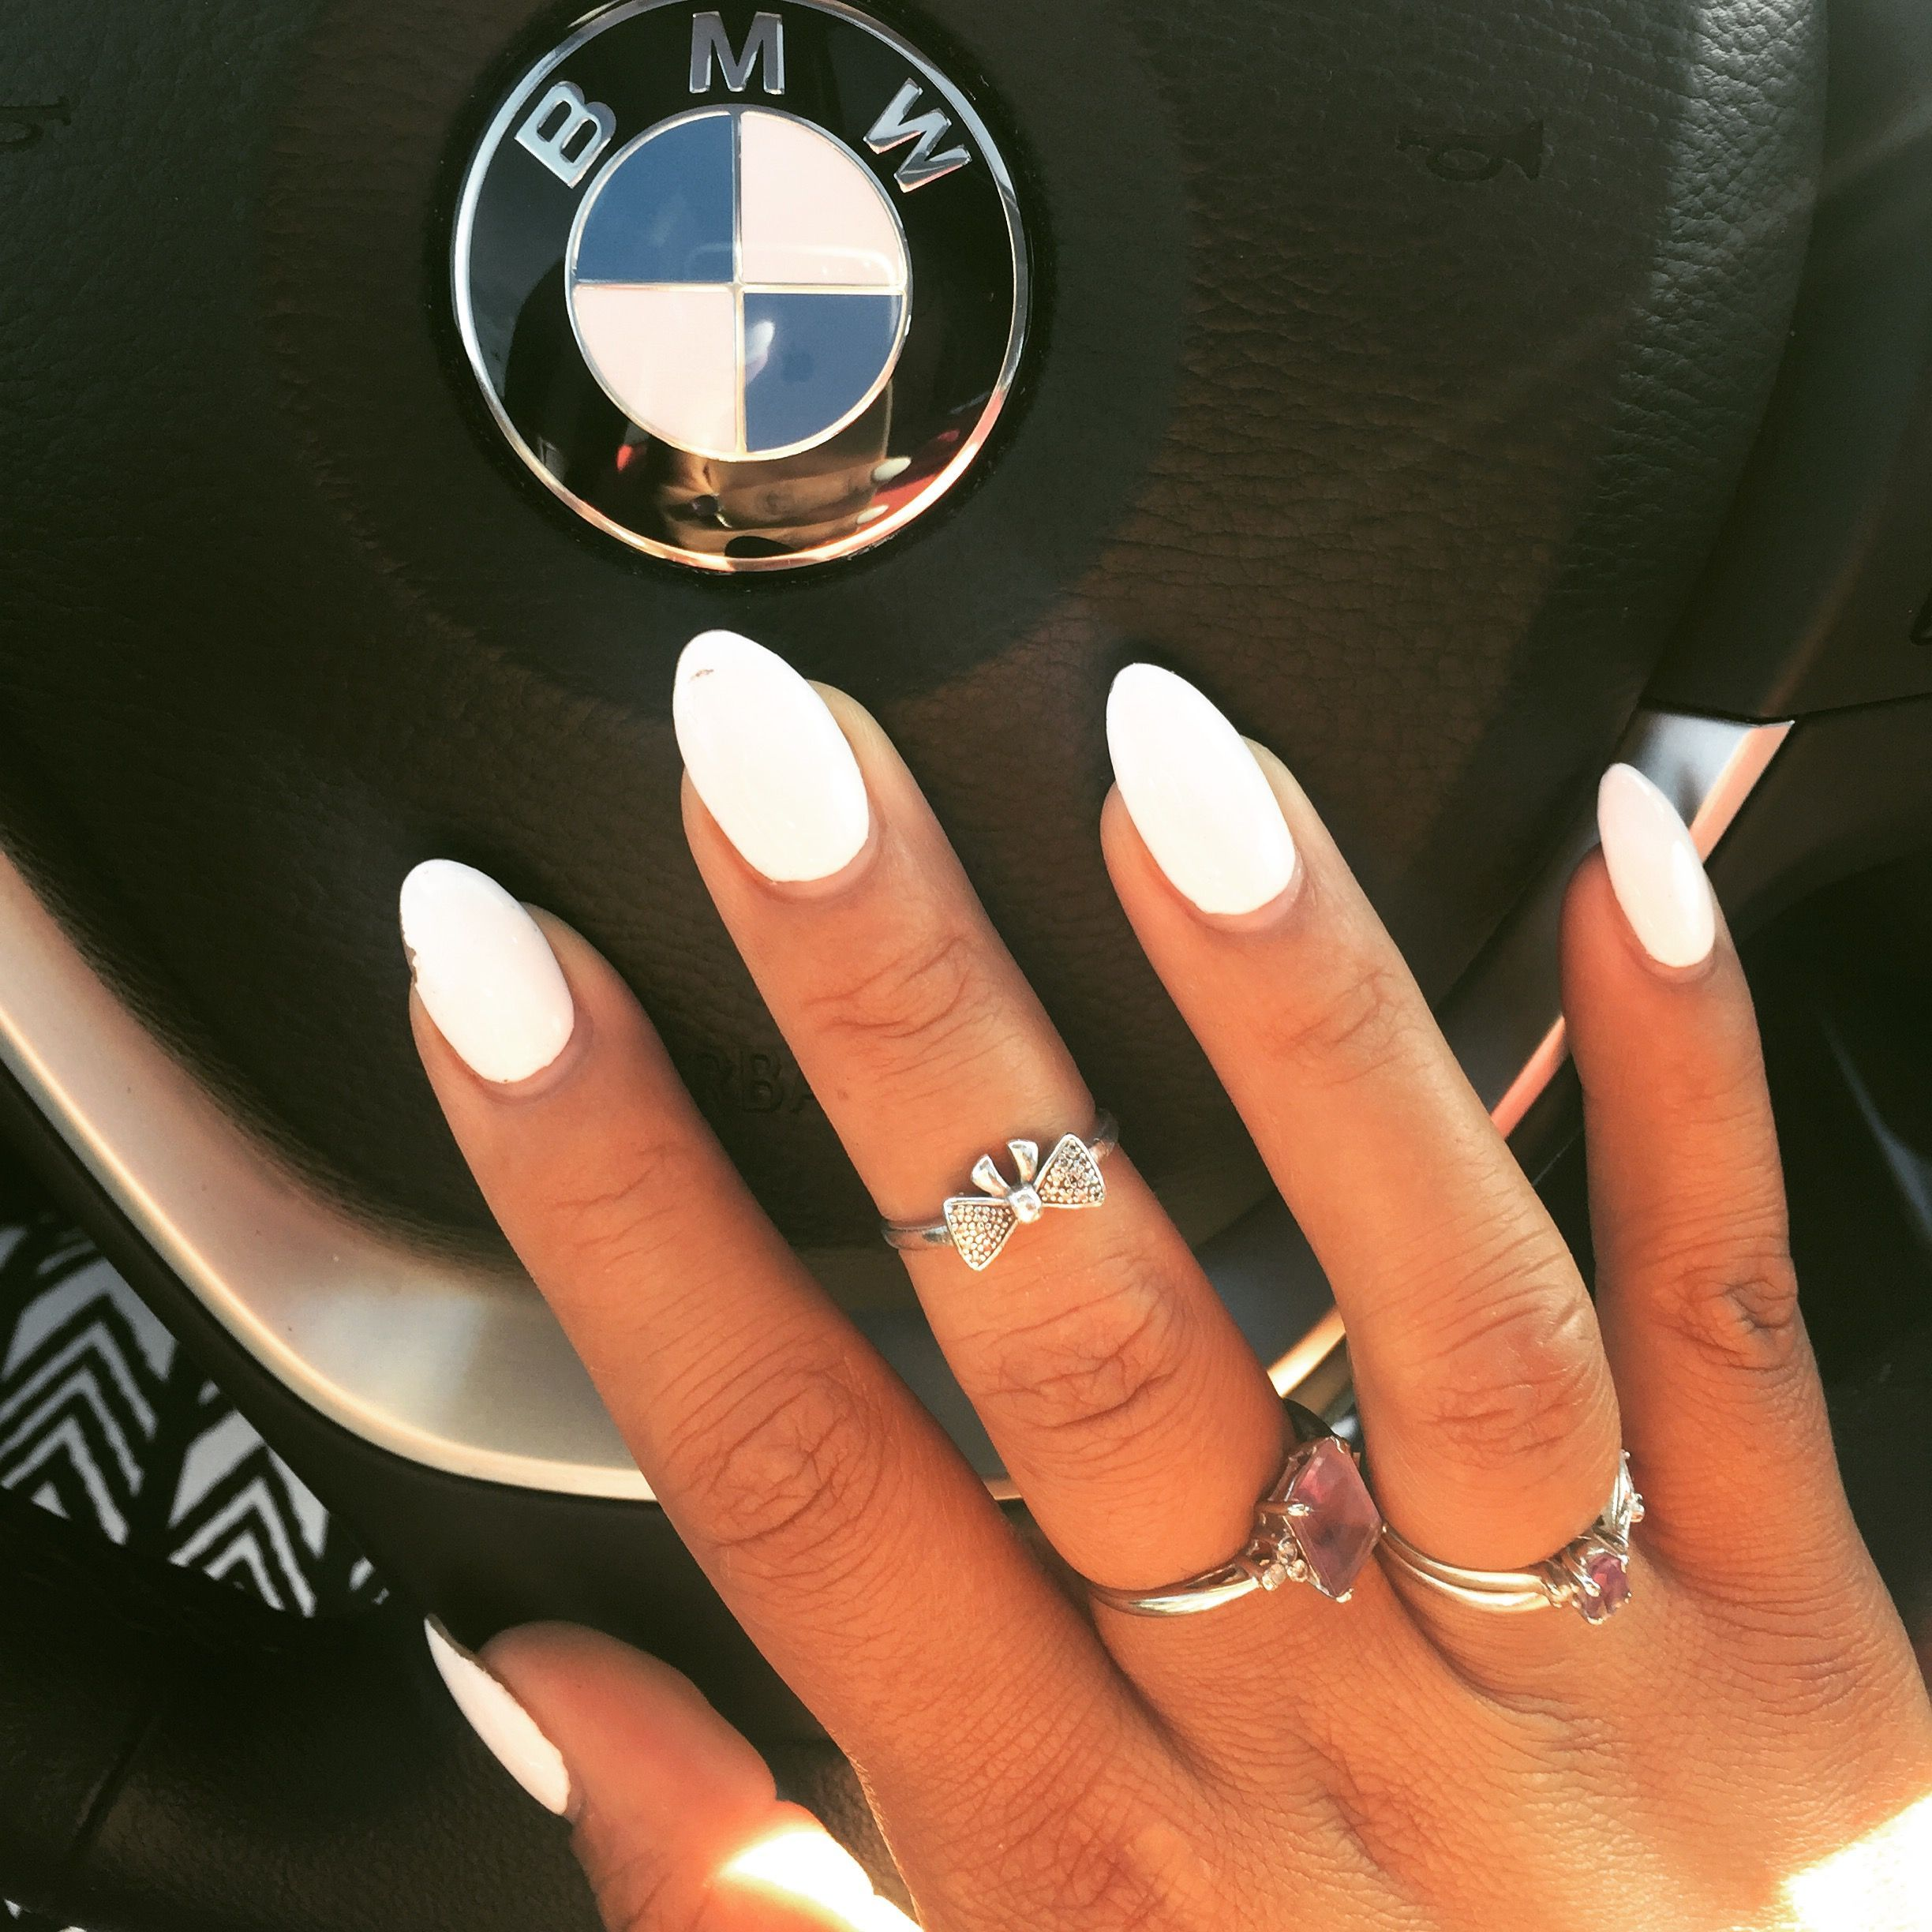 White Polish Summer Nails Almond Shape Bmw Type Laque Beckywiththagood Acrylicnailsideas Summer Nails Almond Oval Acrylic Nails Almond Acrylic Nails